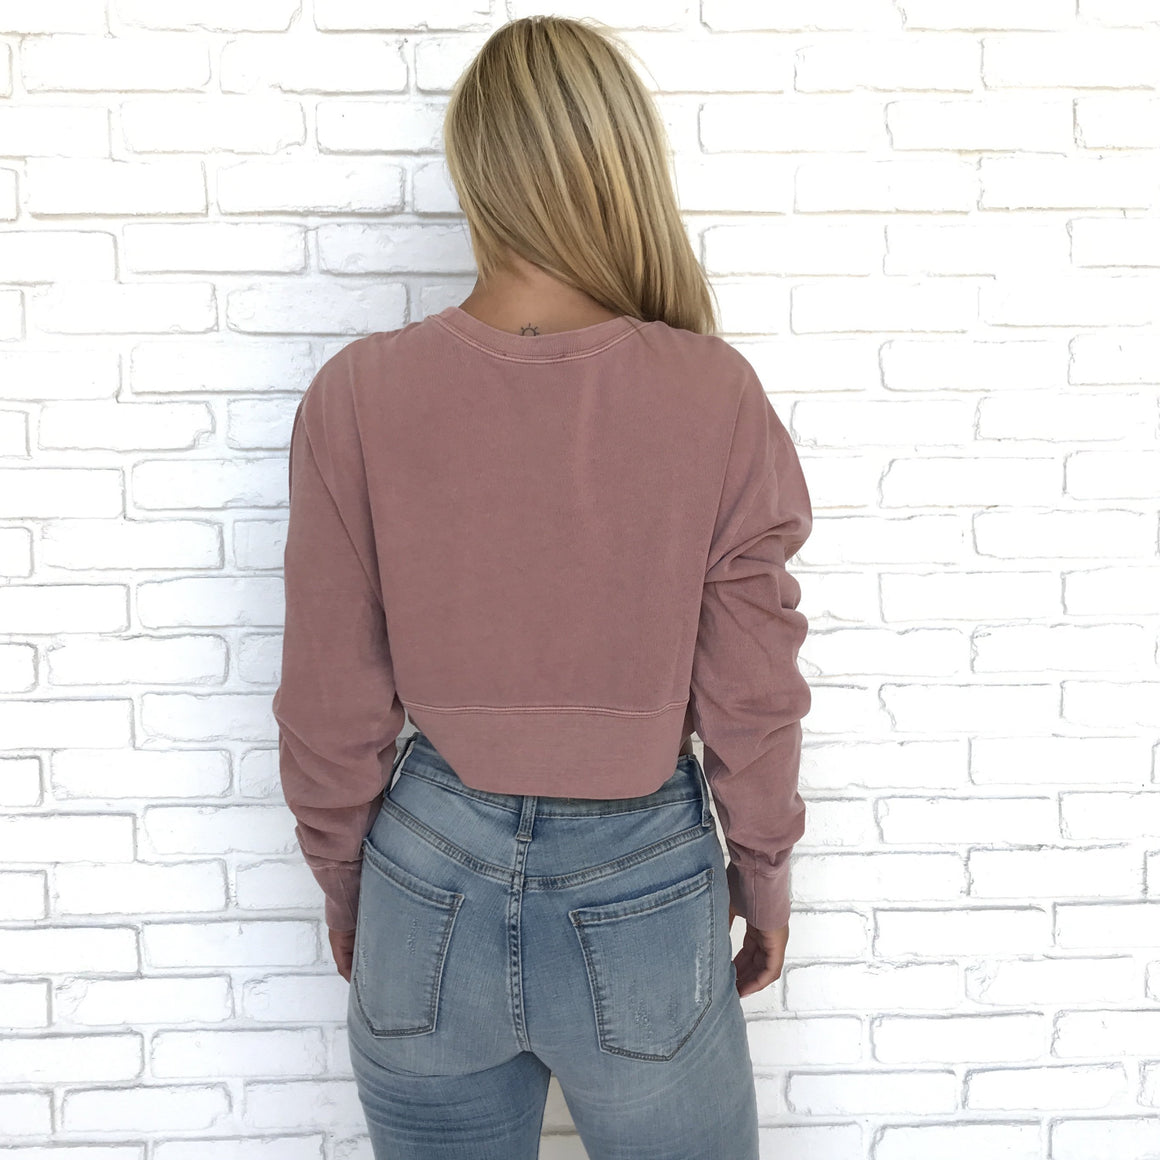 Perhaps Not Rose Crop Top Sweater - Dainty Hooligan